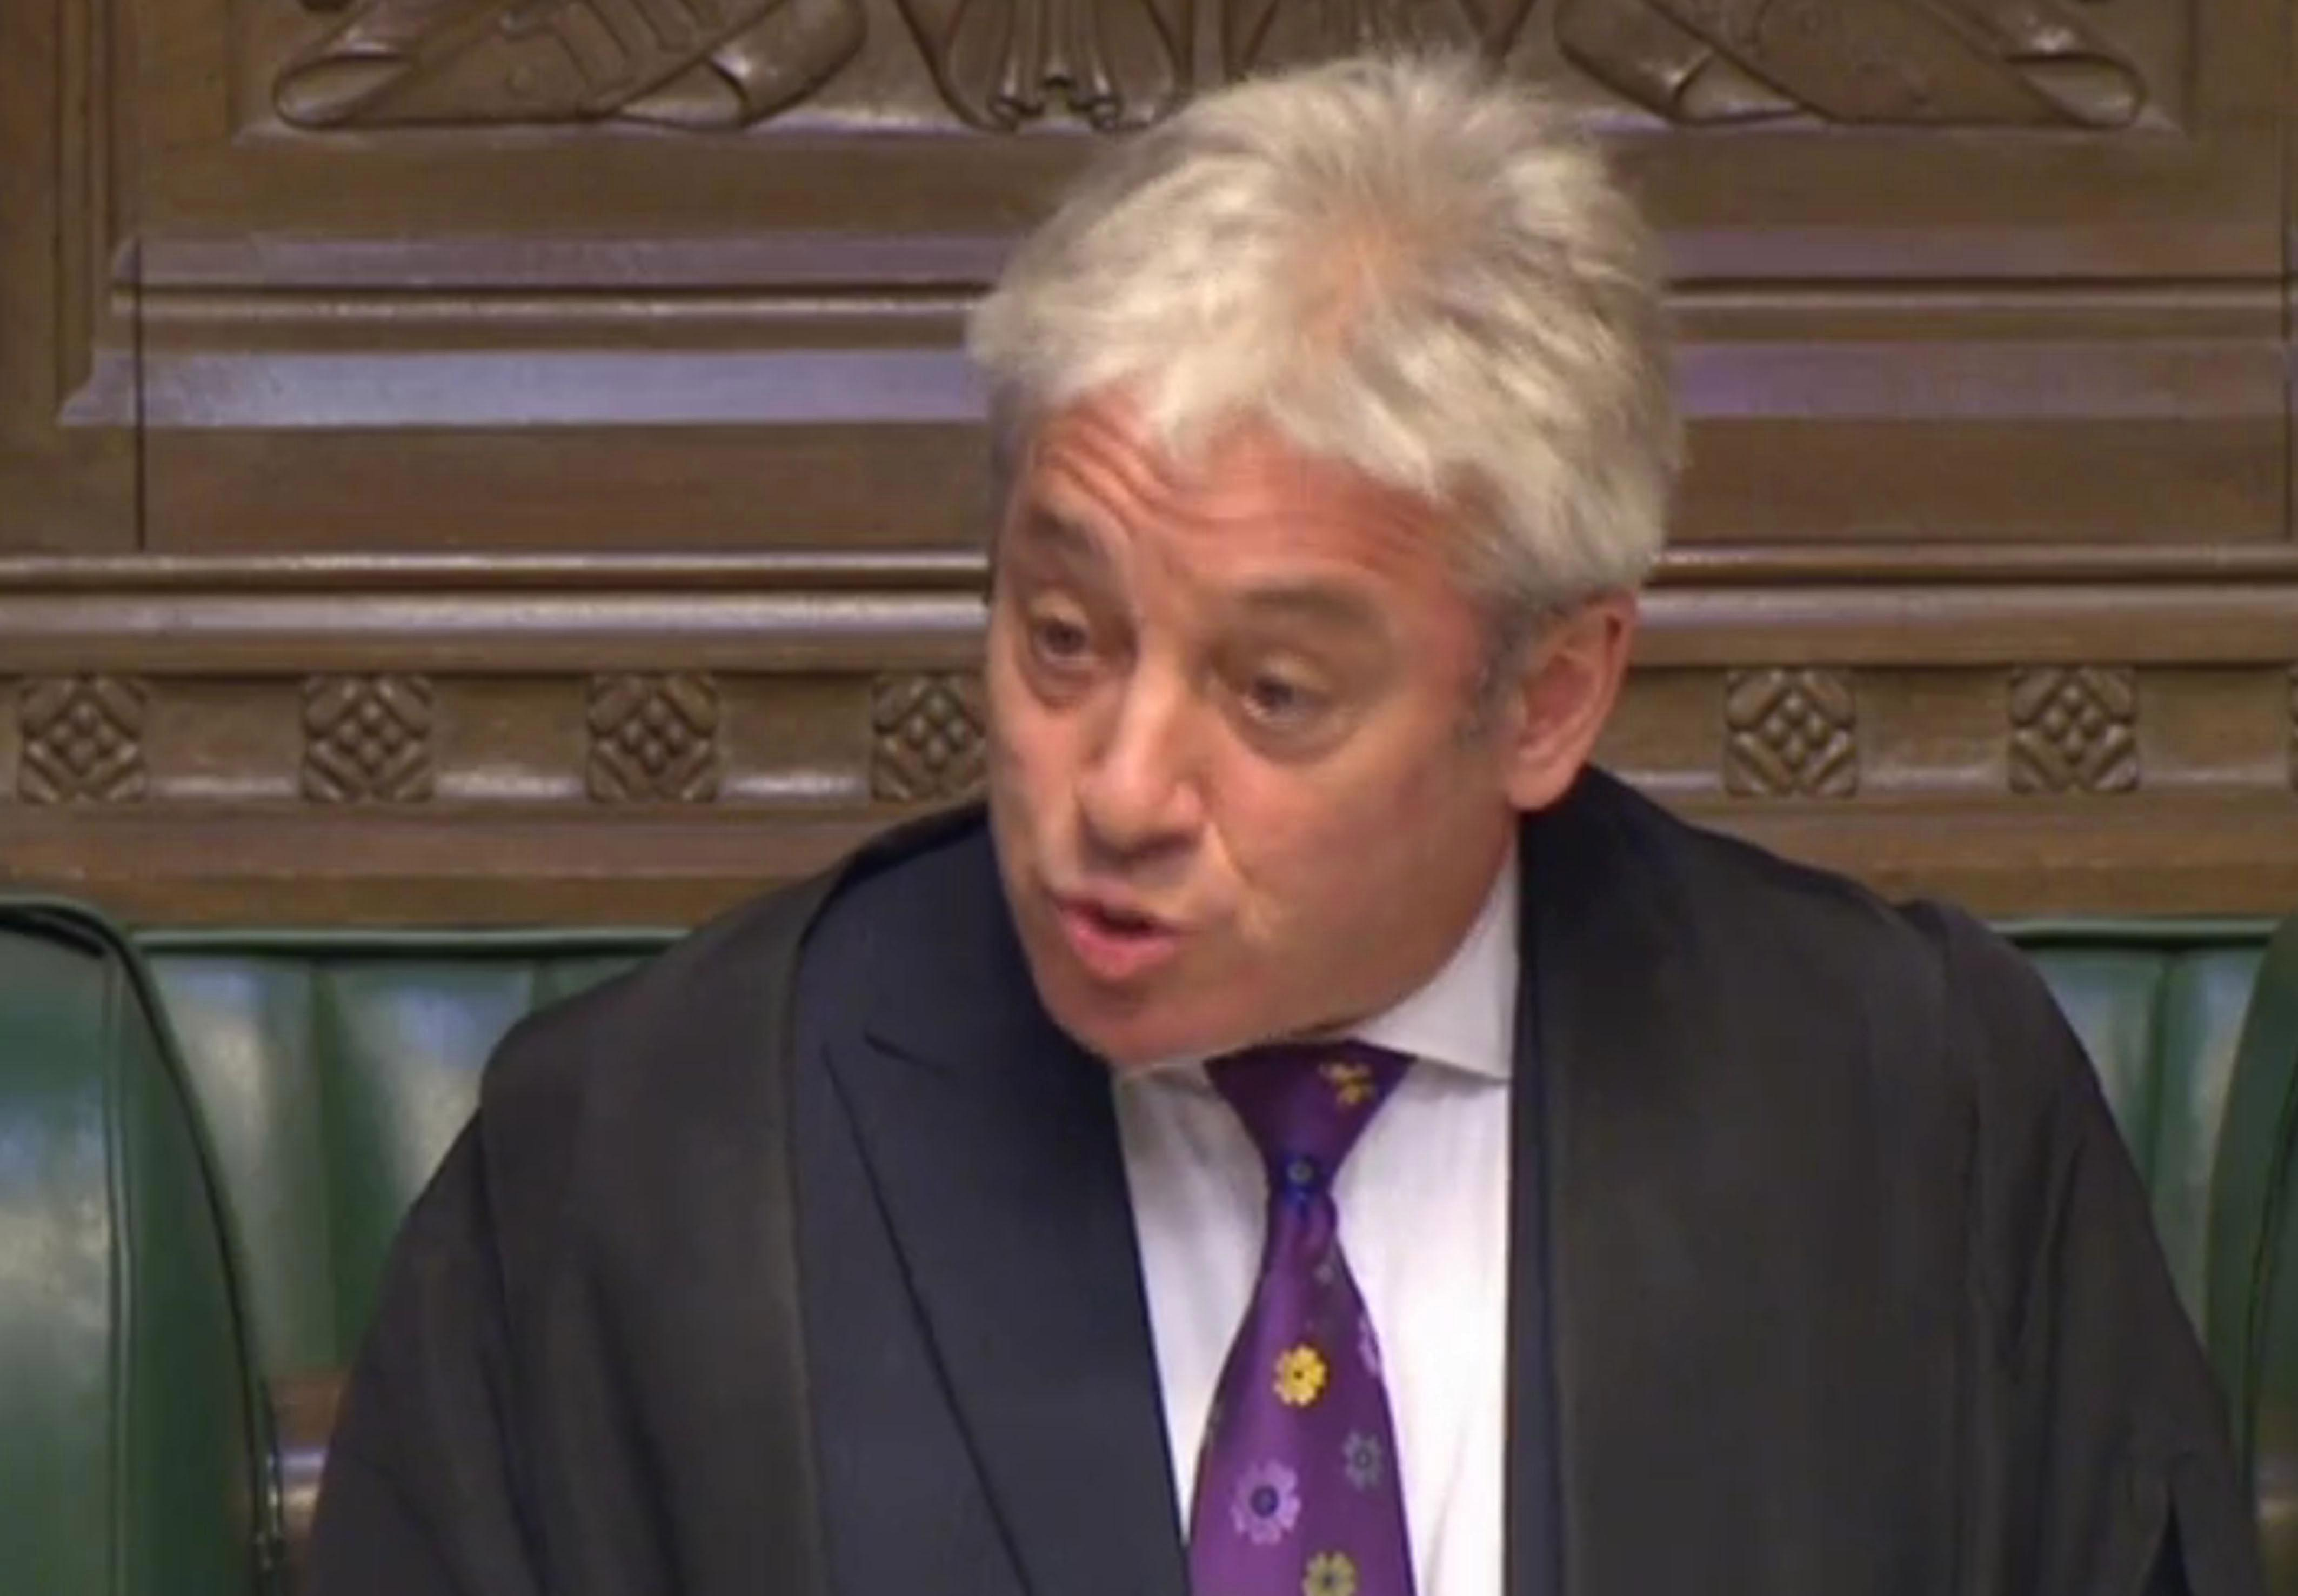 John Bercow charges the taxpayer £70 for photos of himself to send to his fans